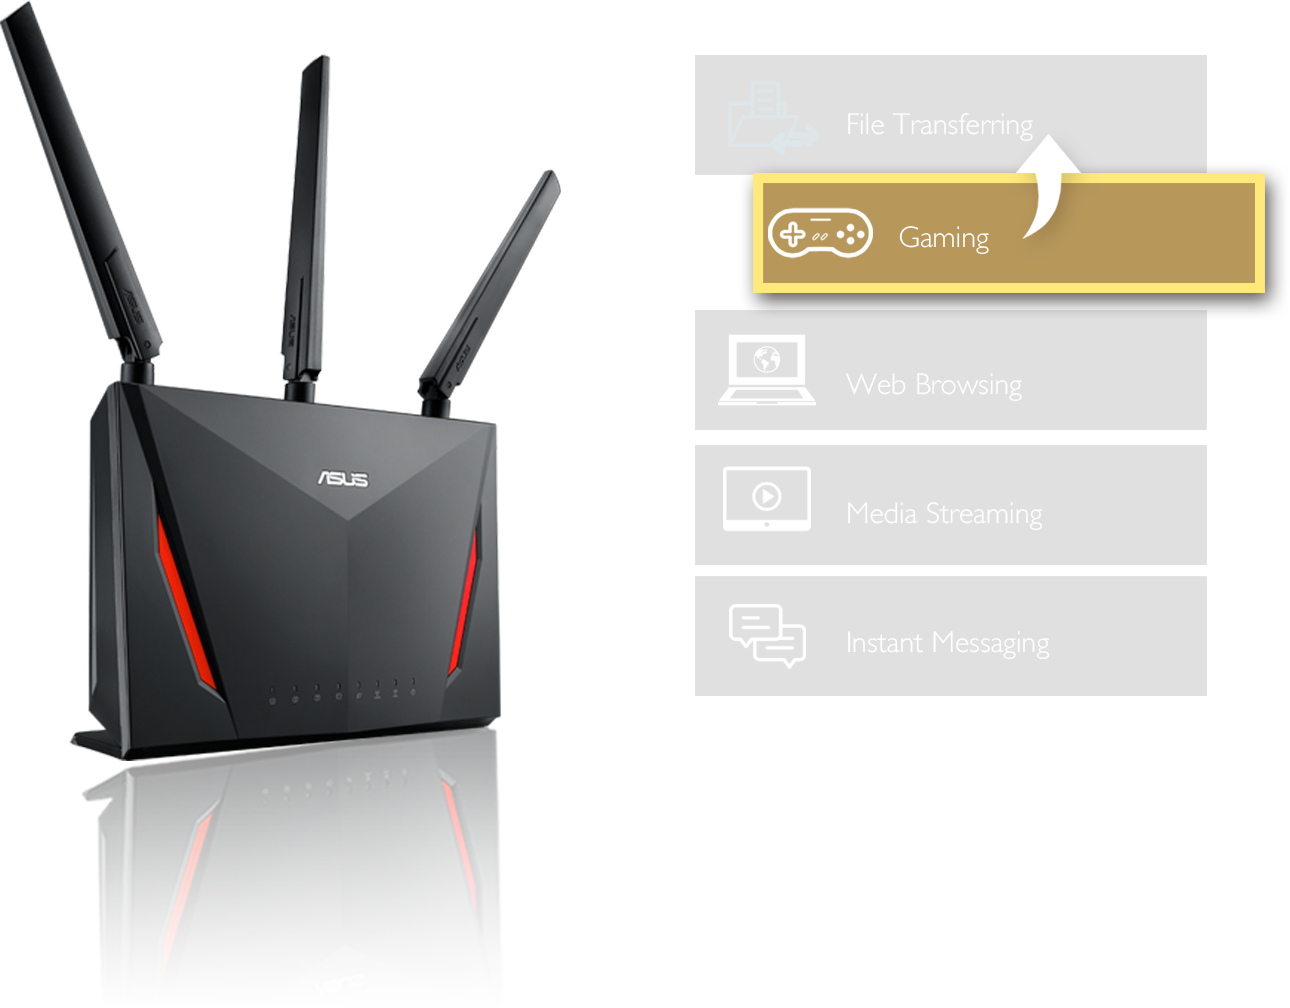 ASUS RT-AC2900 router allows users to select a type of traffic and prioritized the packets in them by setting adaptive QoS in ASUSWRT.